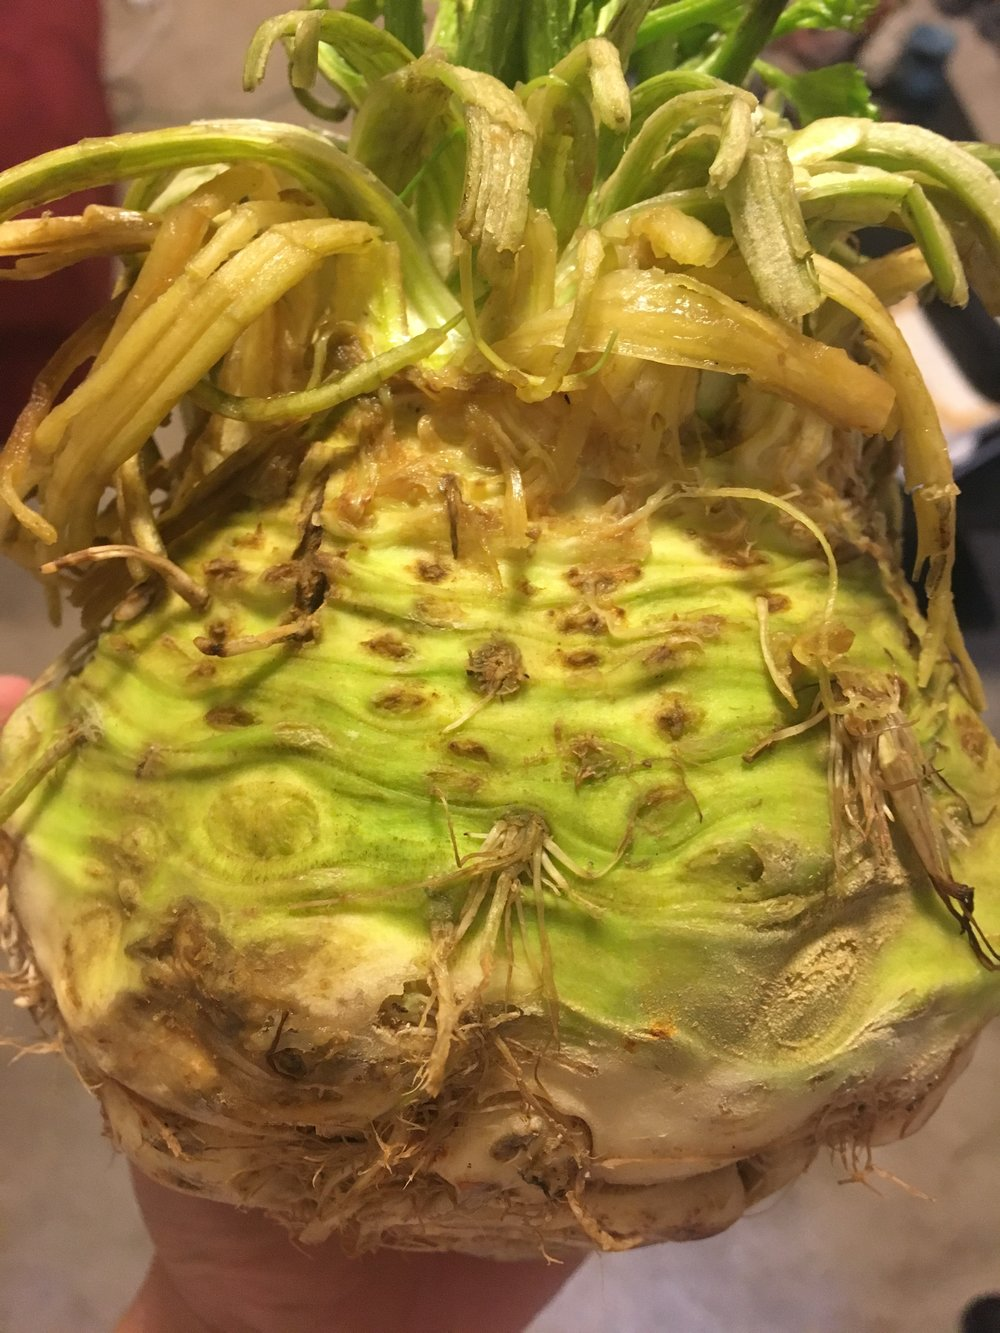 This is a celery root!